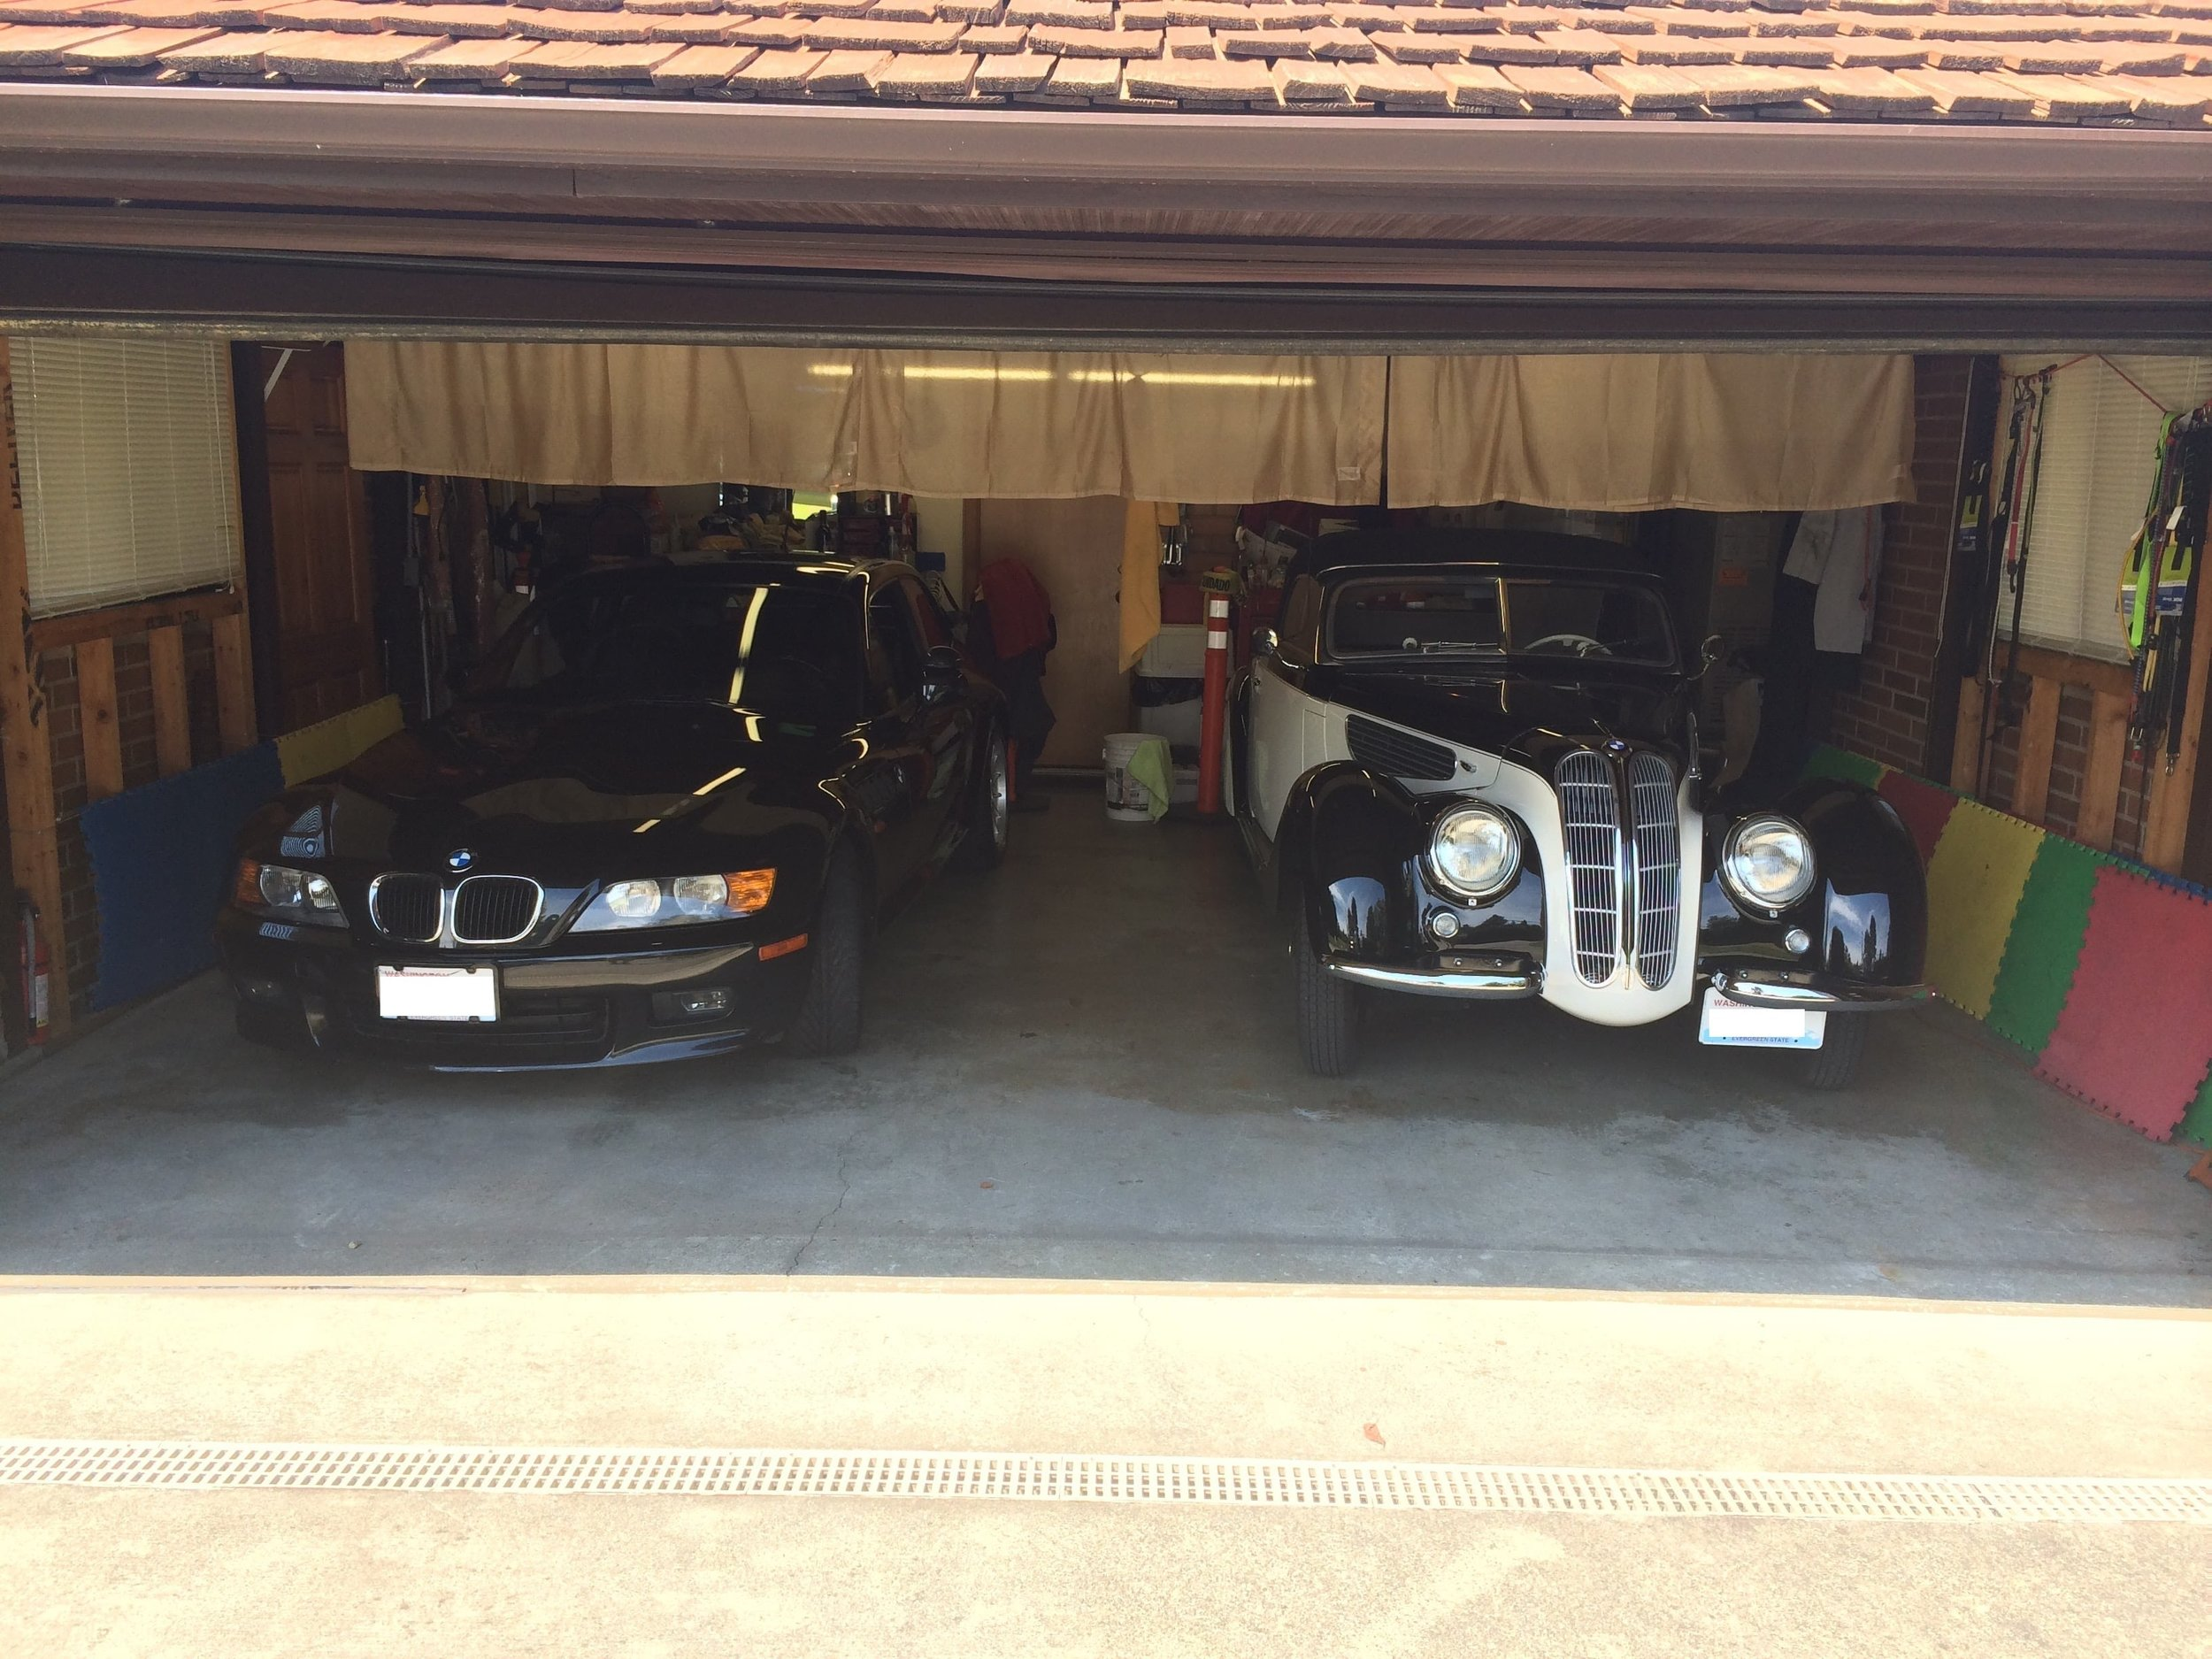 two-vintage-vehicles-auto-detailing-in-garage